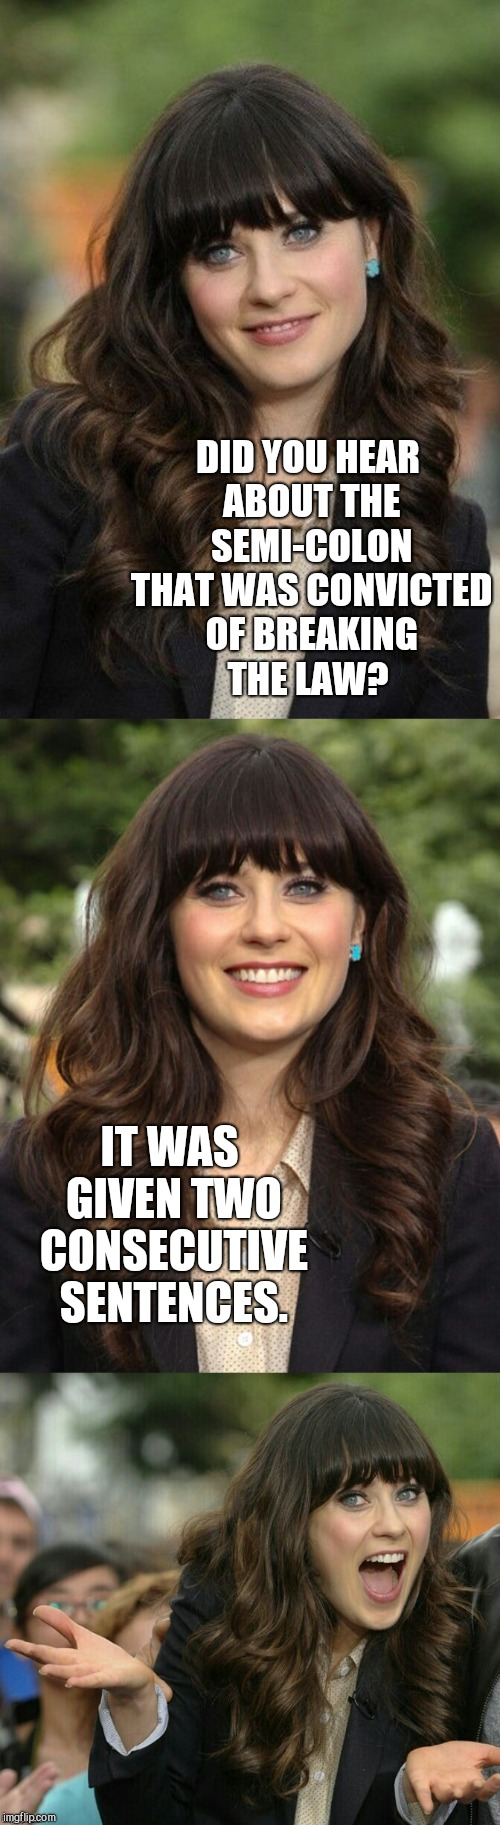 Womp, Womp, Womp | DID YOU HEAR ABOUT THE SEMI-COLON THAT WAS CONVICTED OF BREAKING THE LAW? IT WAS GIVEN TWO CONSECUTIVE SENTENCES. | image tagged in zooey deschanel joke template,zooey deschanel,jbmemegeek,bad puns | made w/ Imgflip meme maker